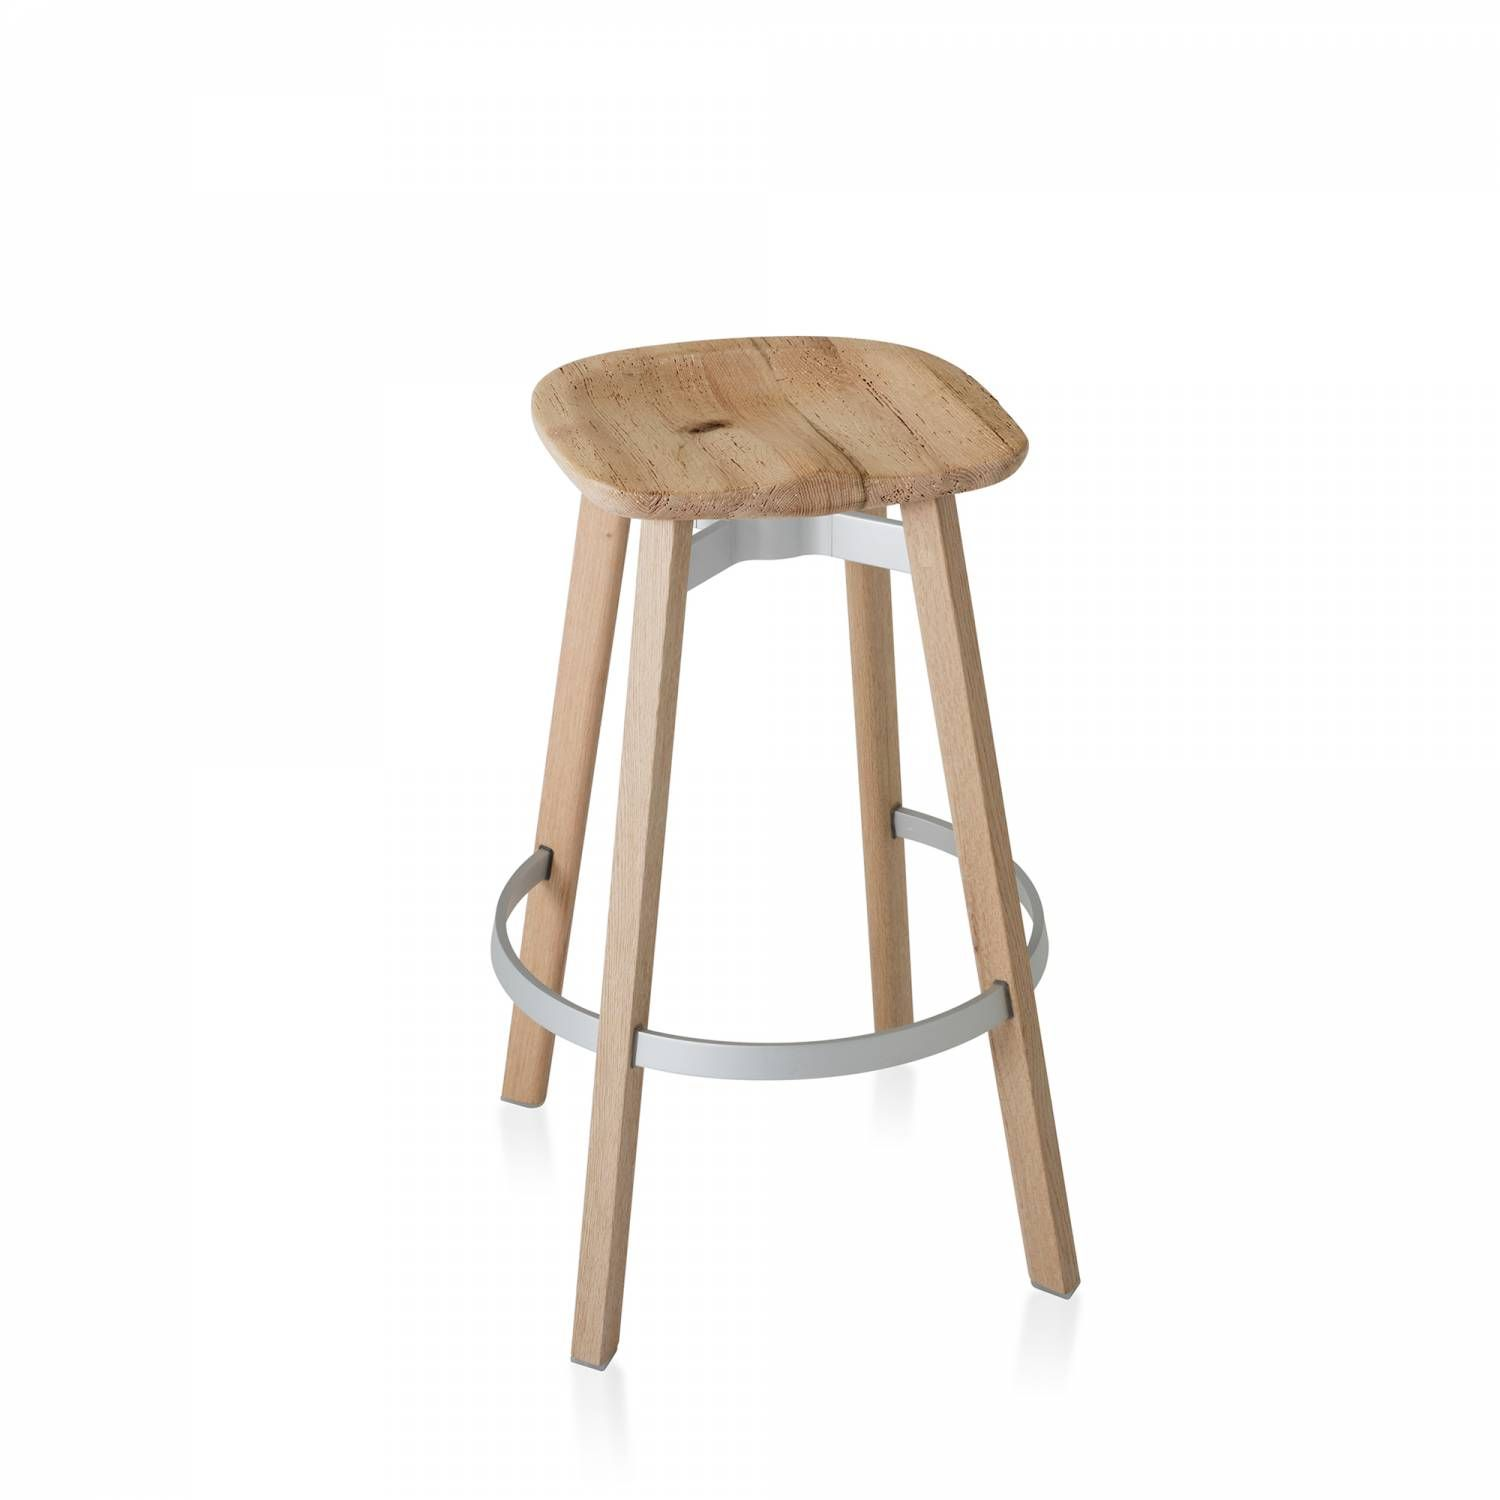 SU BARSTOOL, RECLAIMED OAK SEAT WOODEN LEGS With the invisible ...